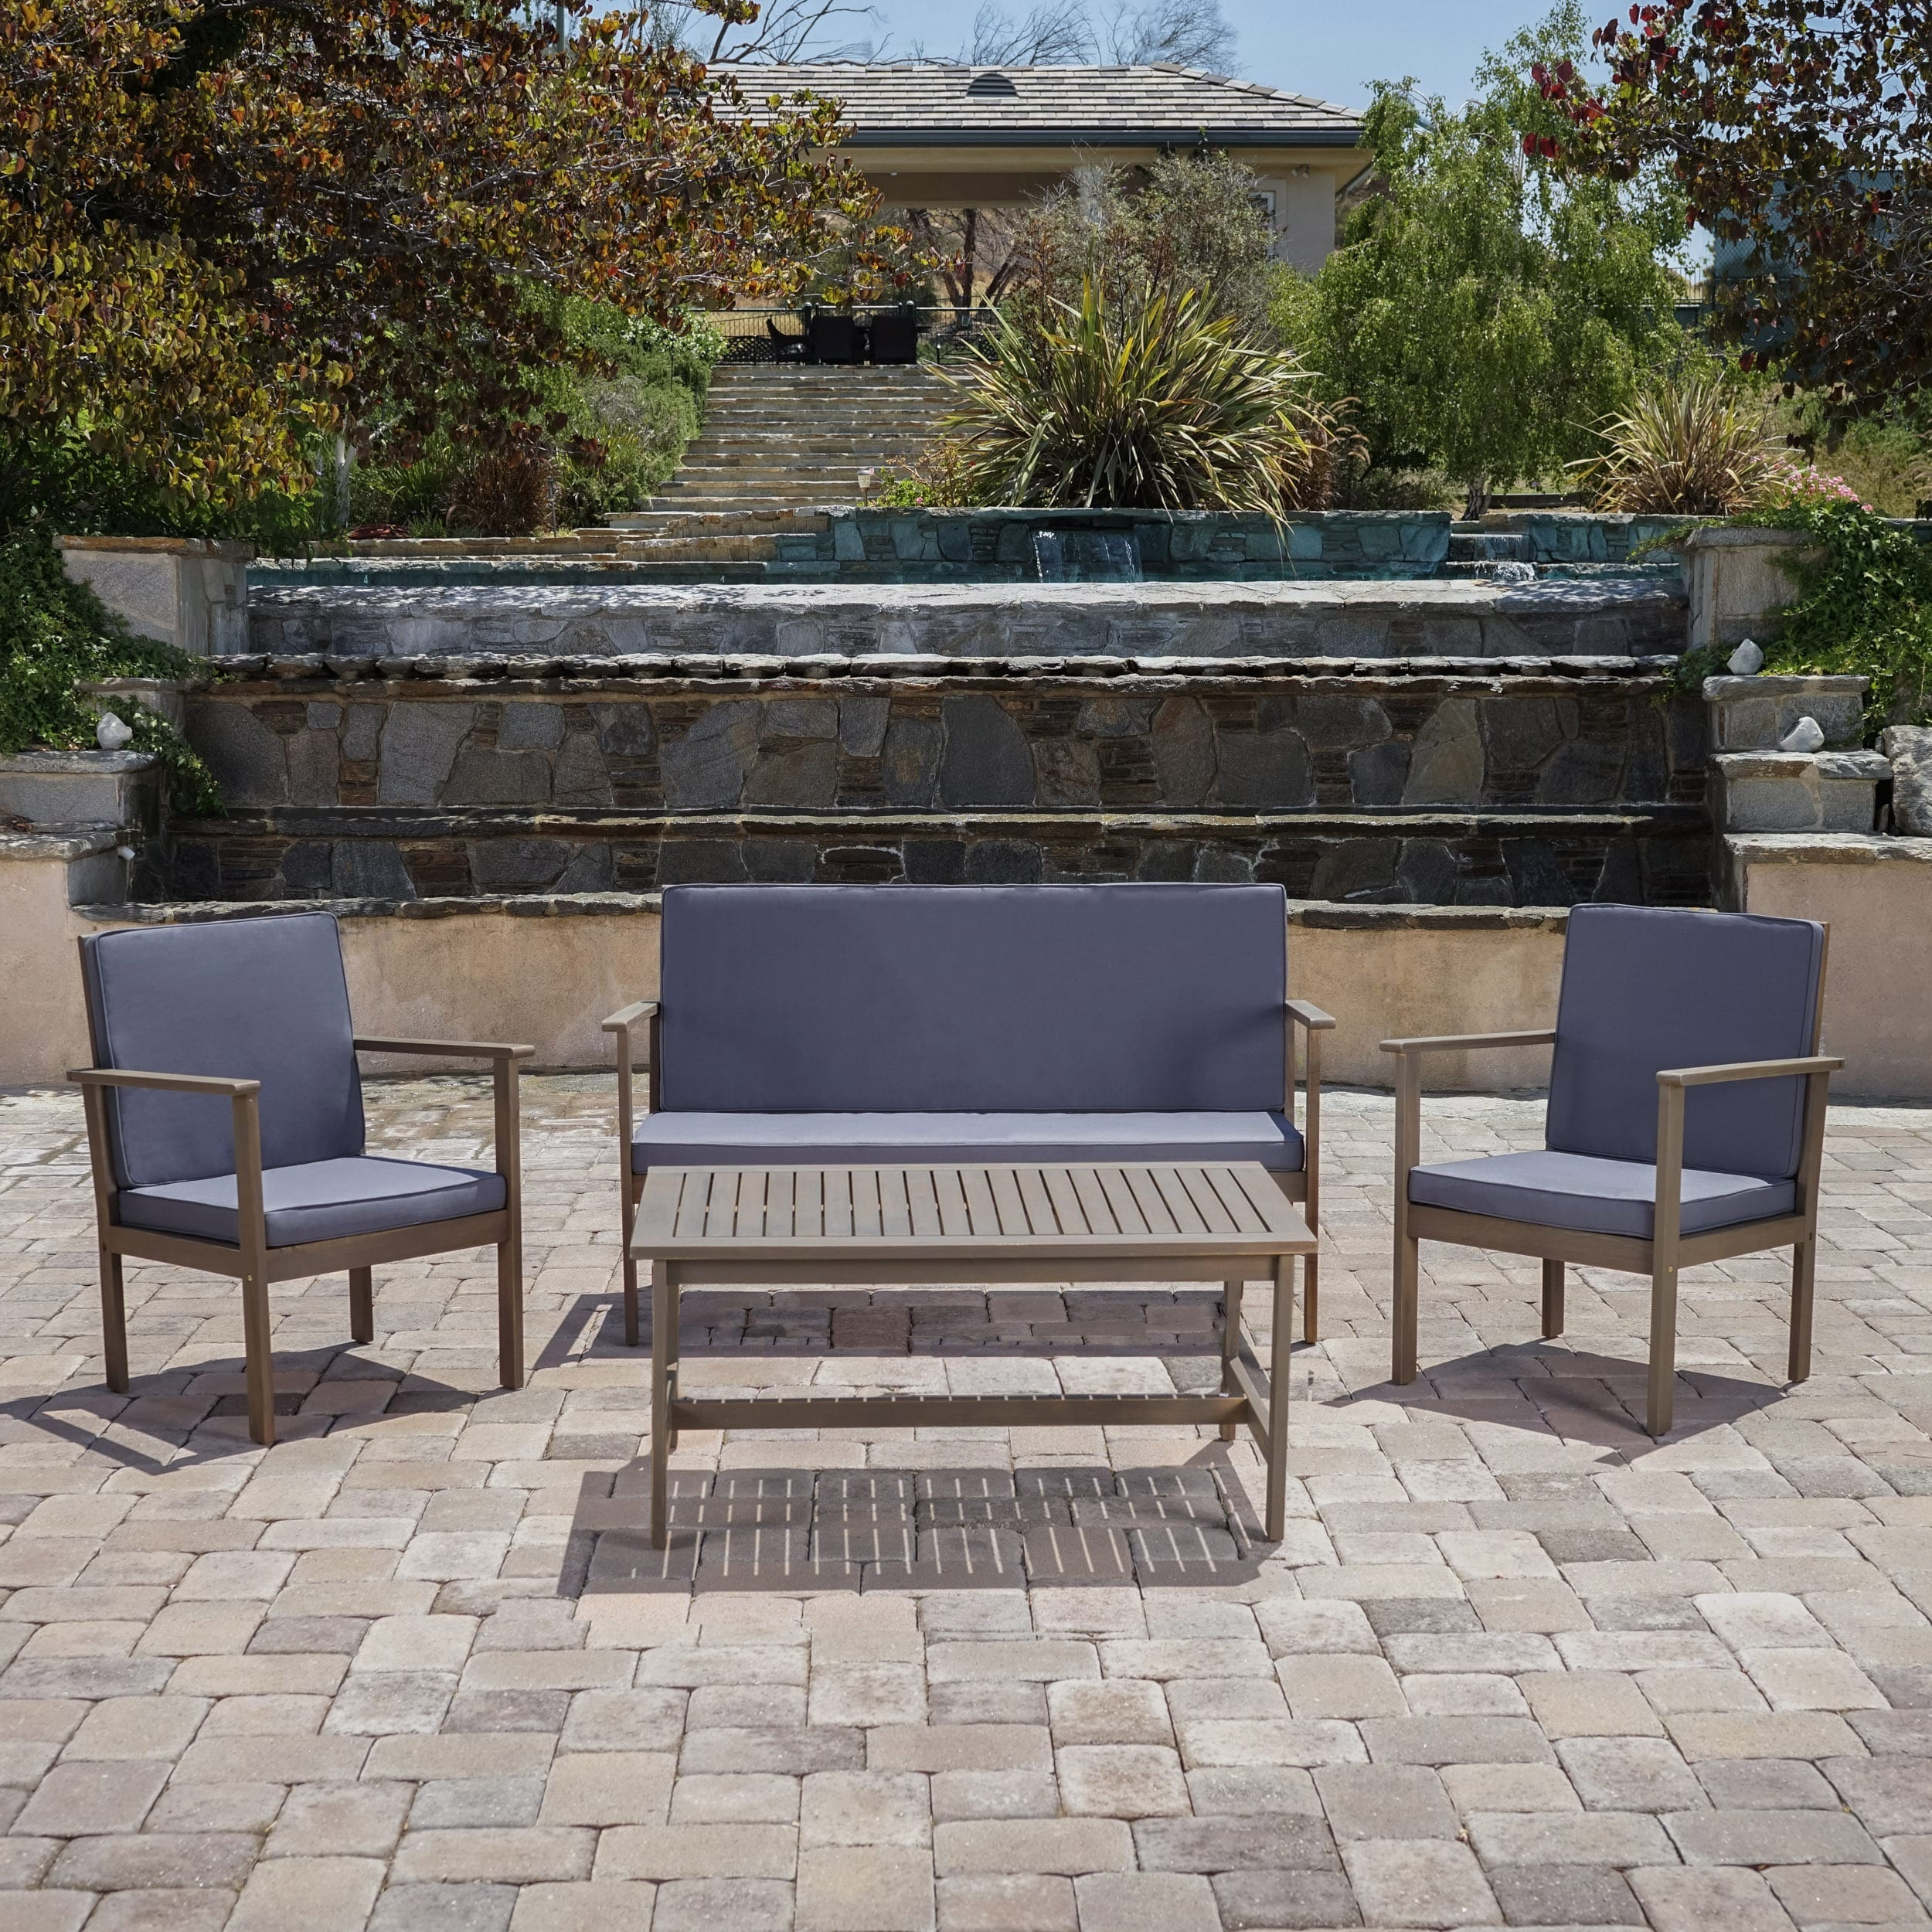 Christopher Knight Home Luciano Outdoor 4-piece Acacia Wood Chat Set with Cushions by